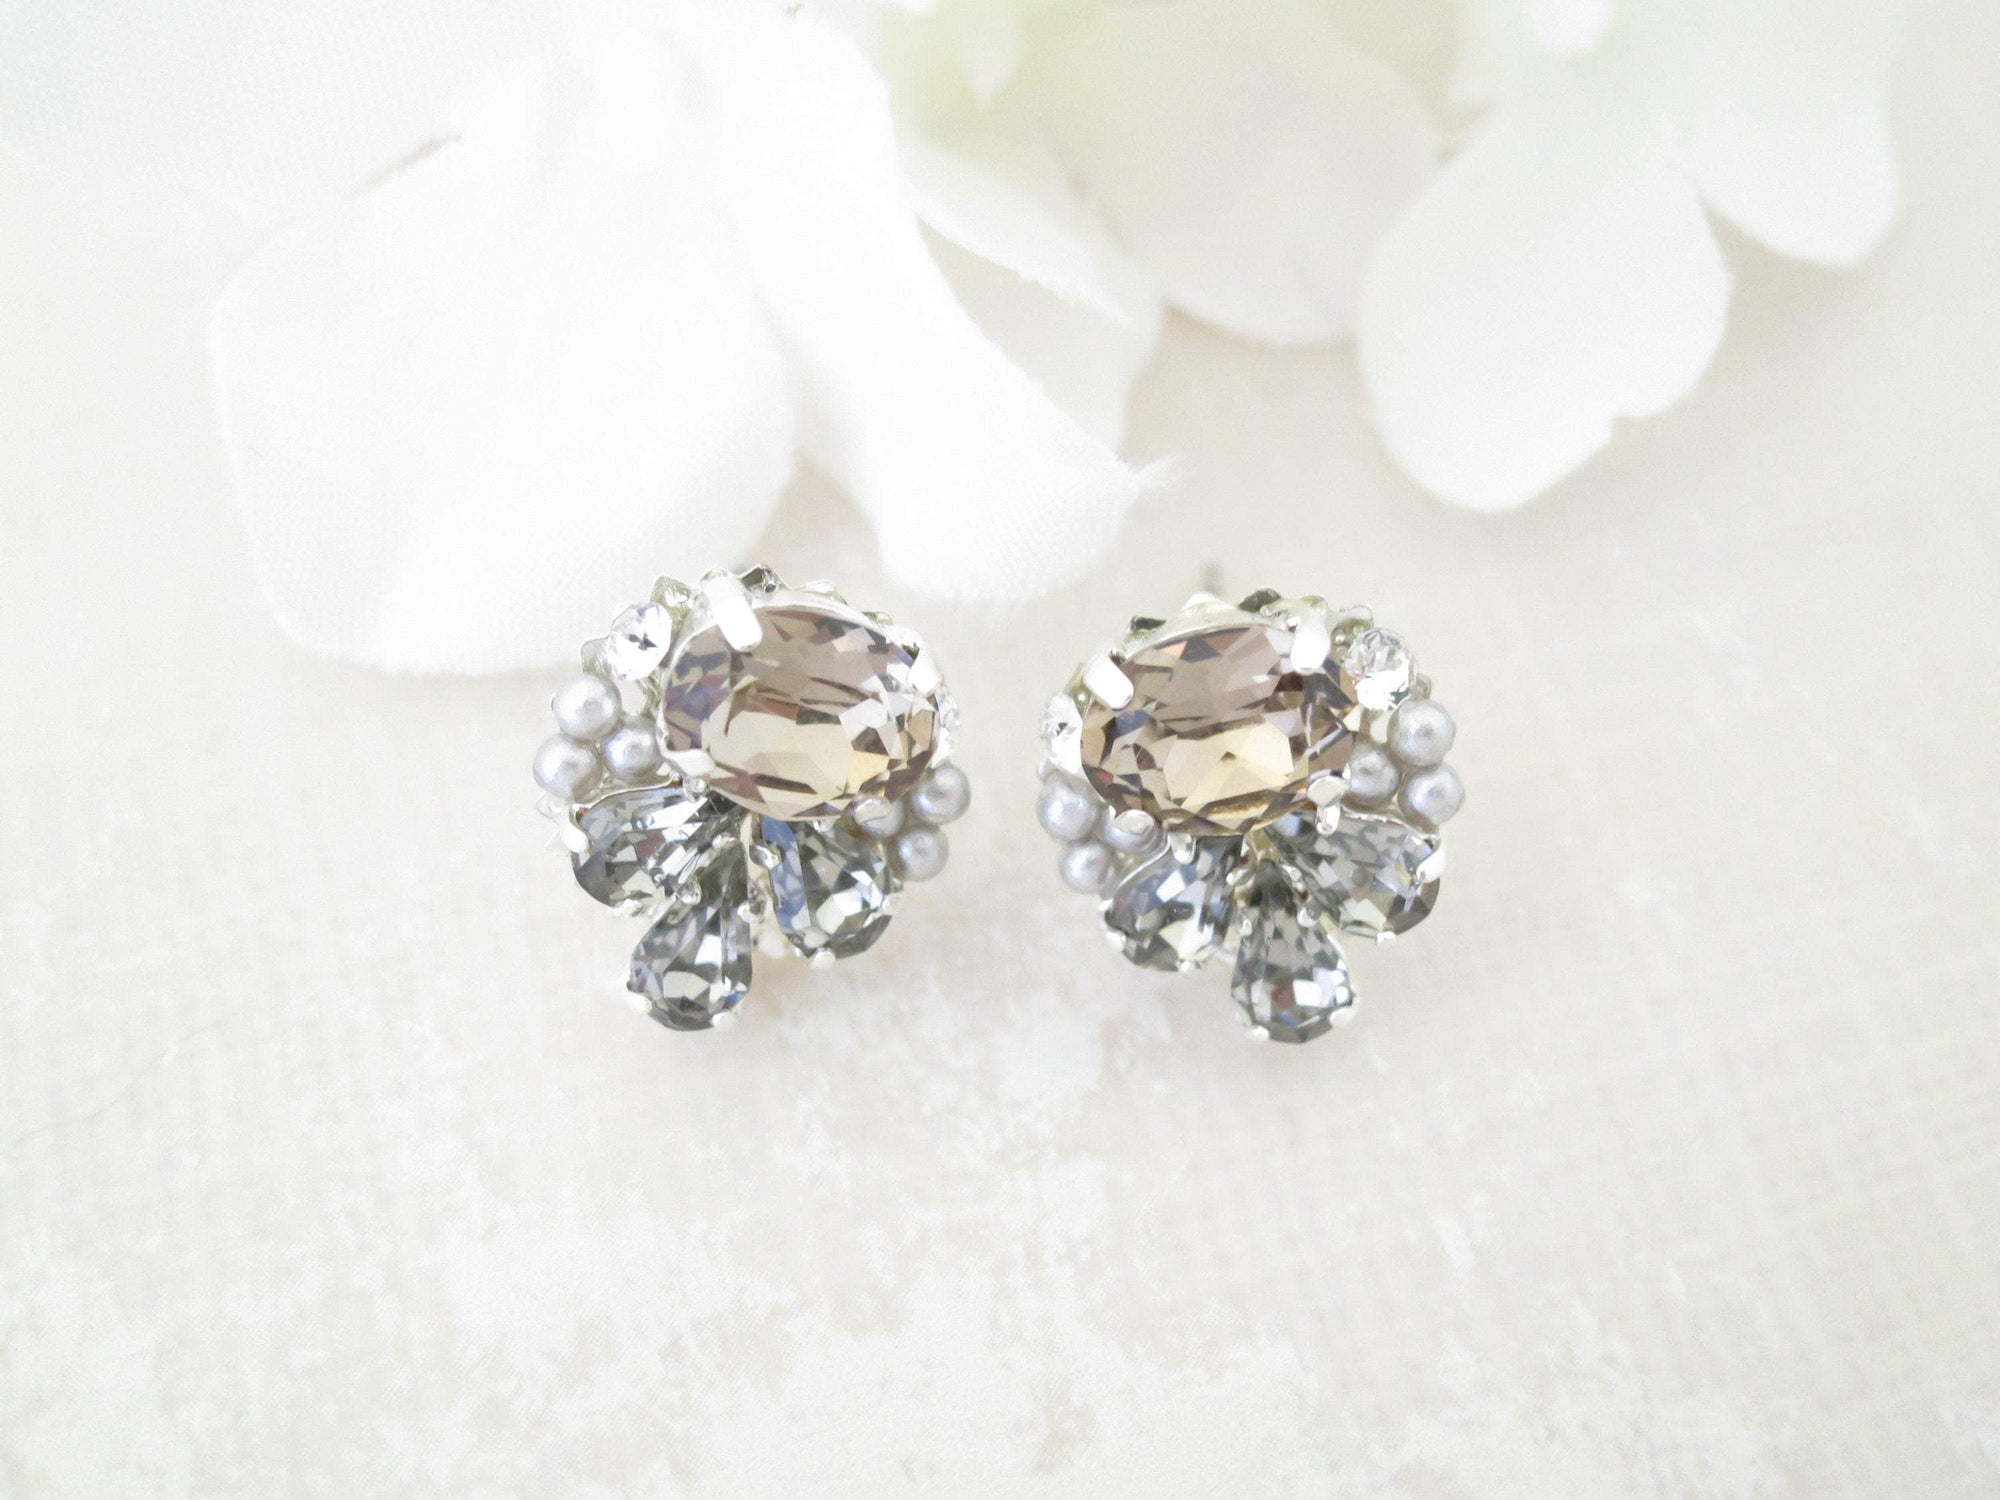 TRACY:  Muted Gray Crystal Button Earrings - BlingBaddaBoom - Minimalist, Vintage, Modern Wedding and Bridal Jewelry